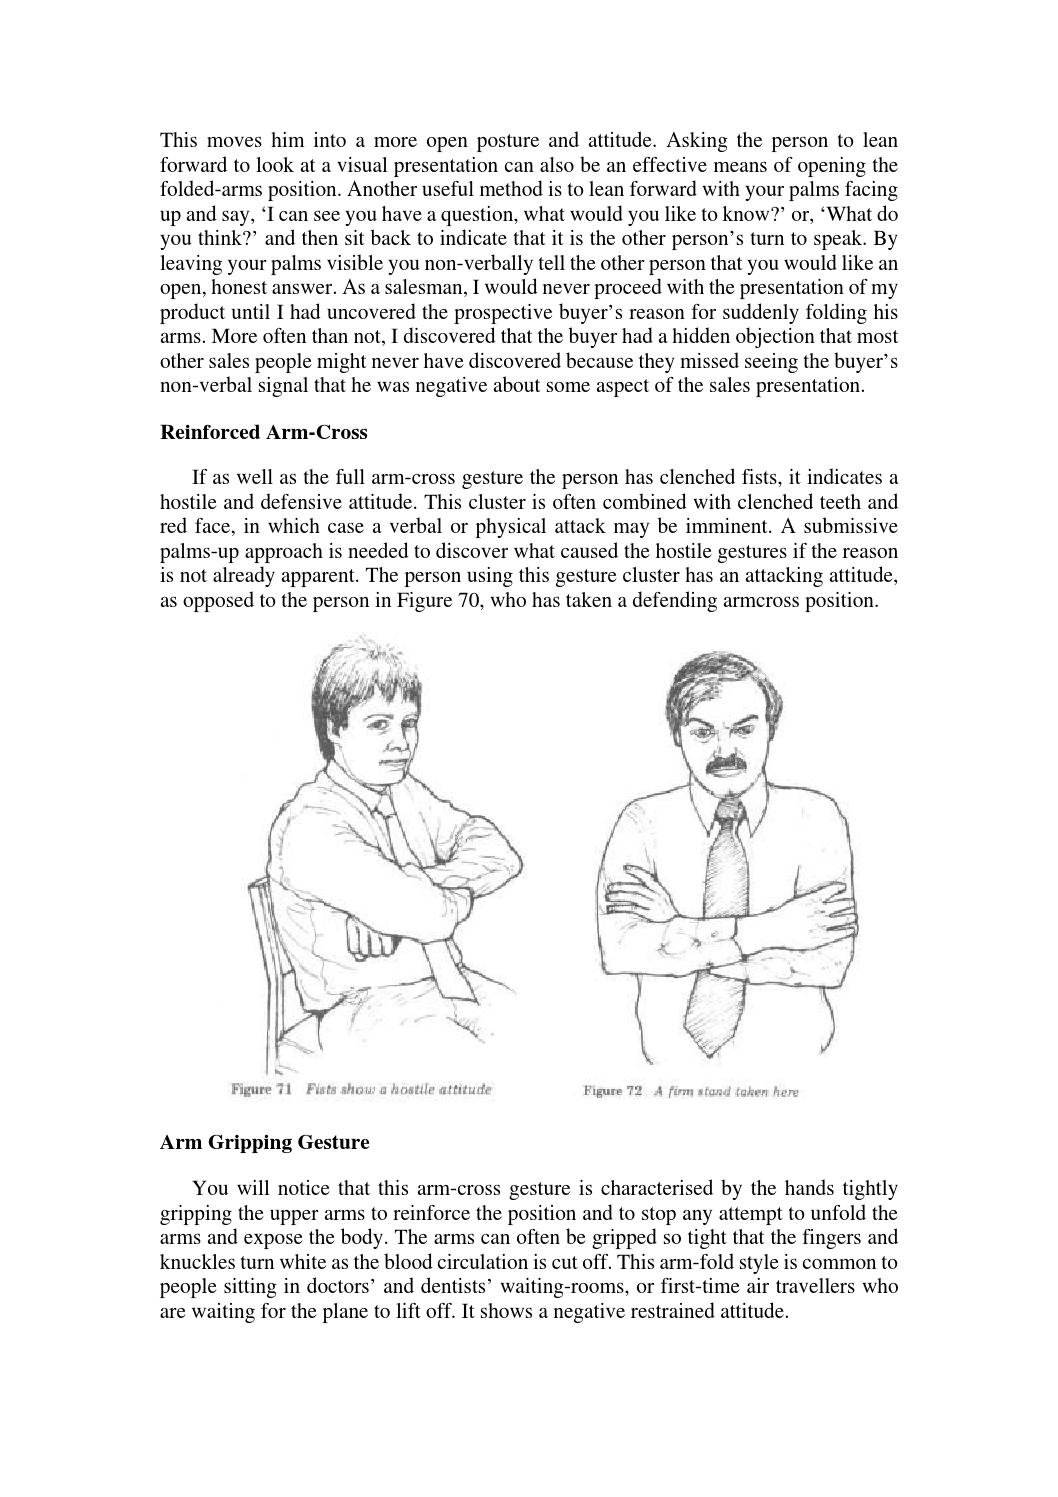 Body Language - What Arm Gestures Convey